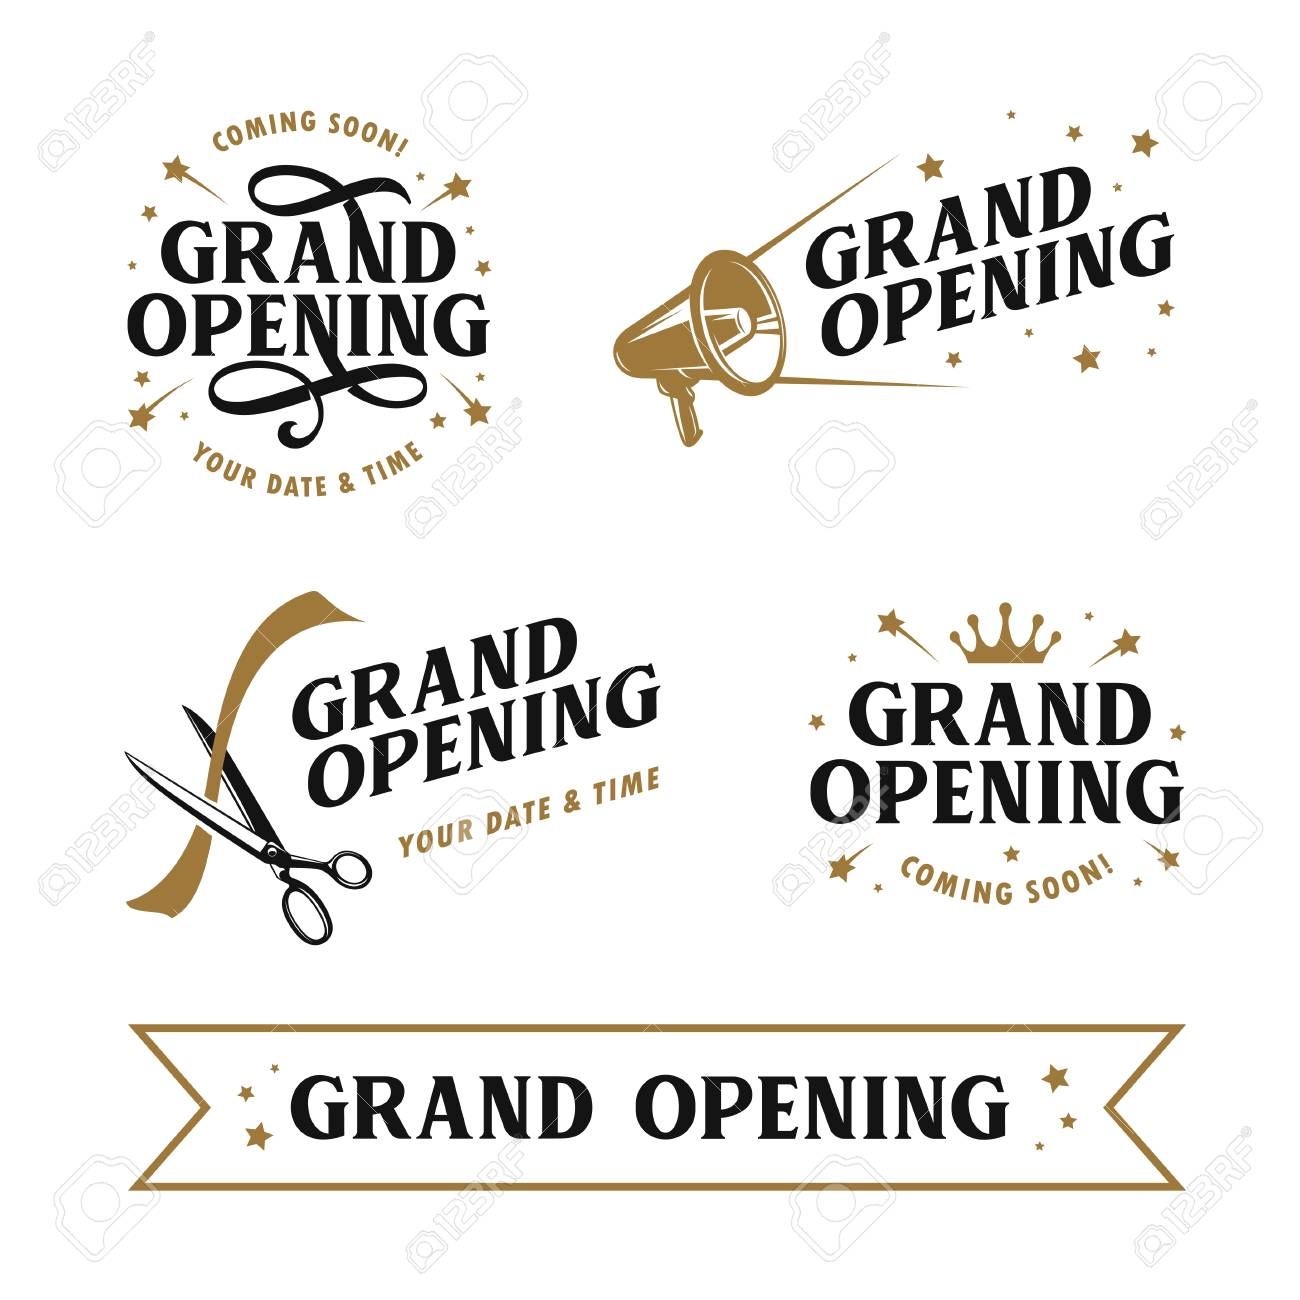 Grand opening templates set. Lettering design elements for opening ceremony. Retro style typography. Vector vintage illustration. - 110505276